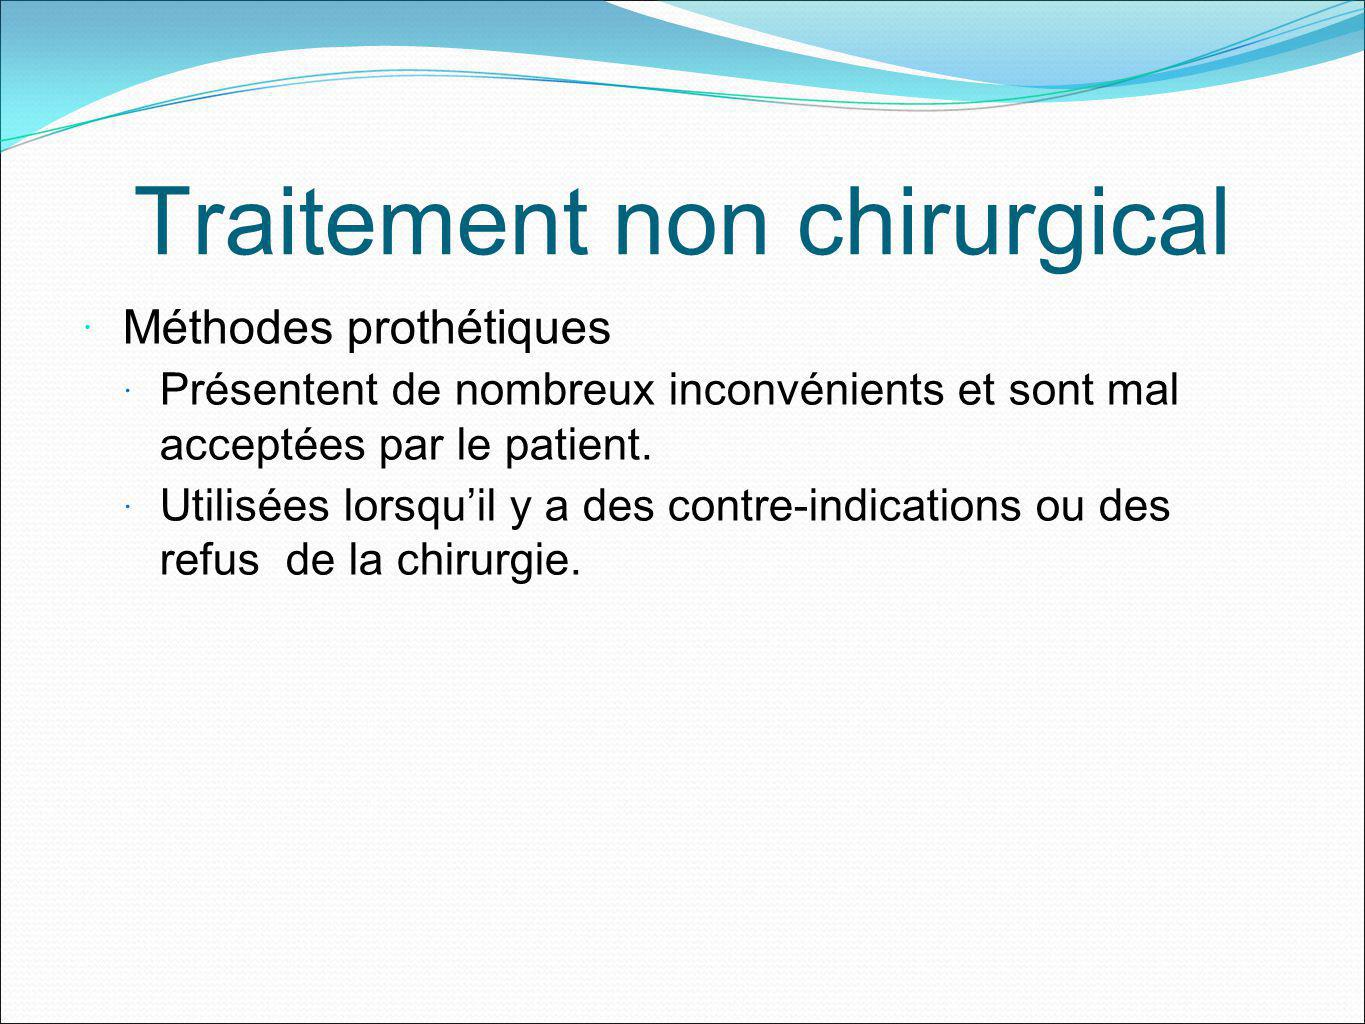 Traitement non chirurgical